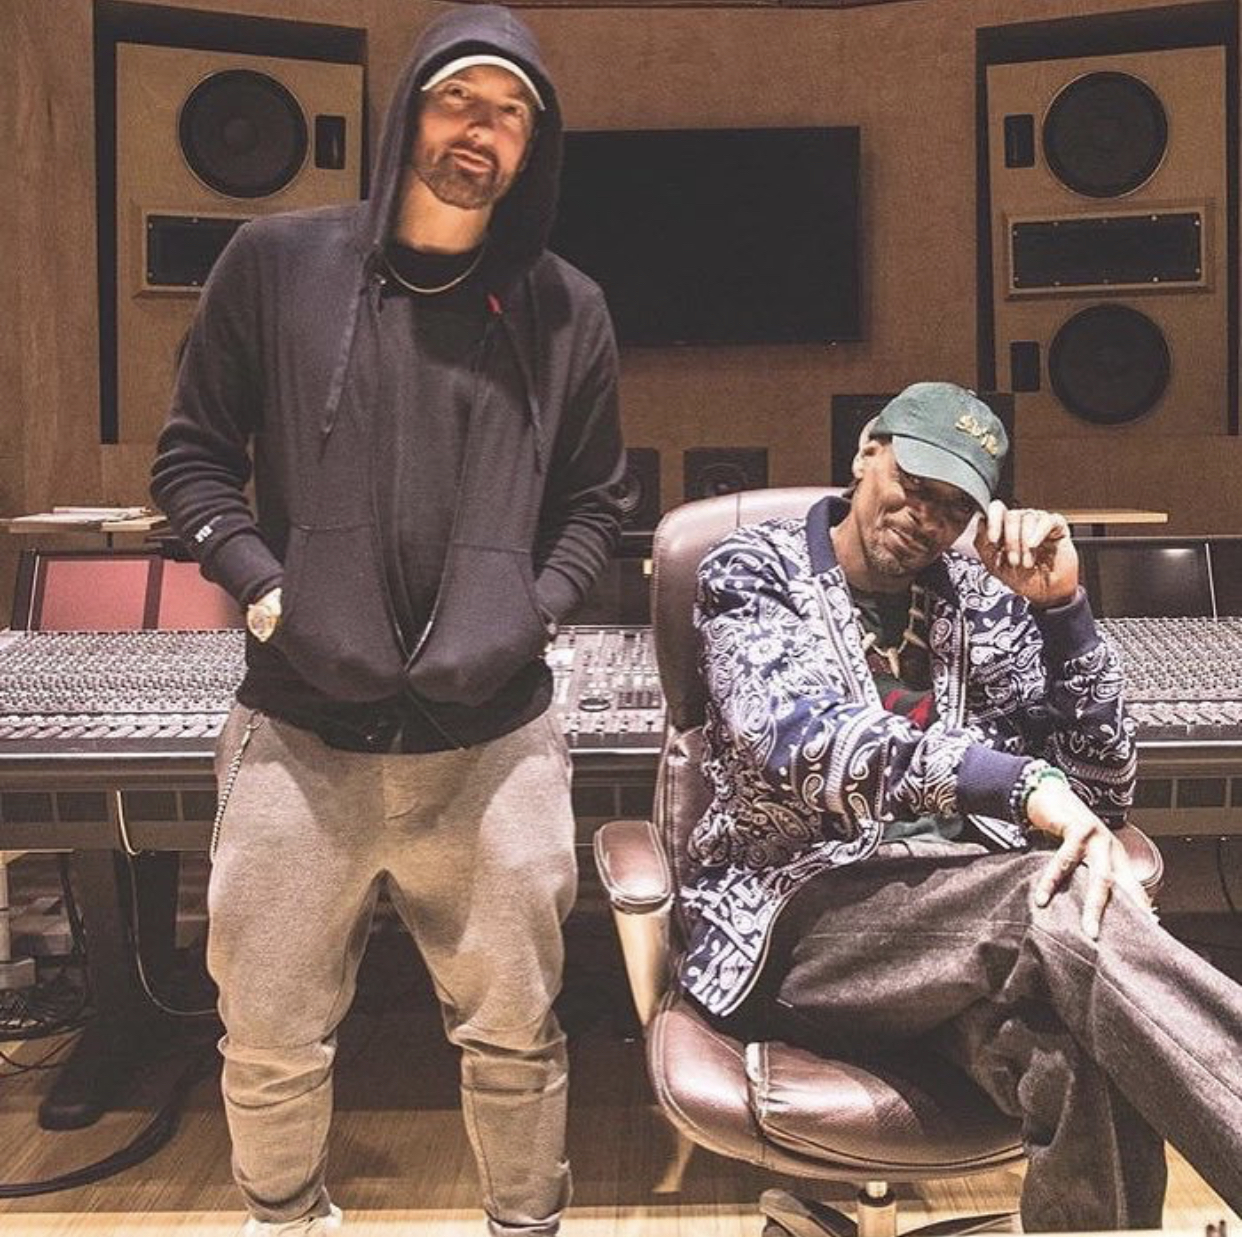 Eminem and Snoop Dogg are working on a new collaboration